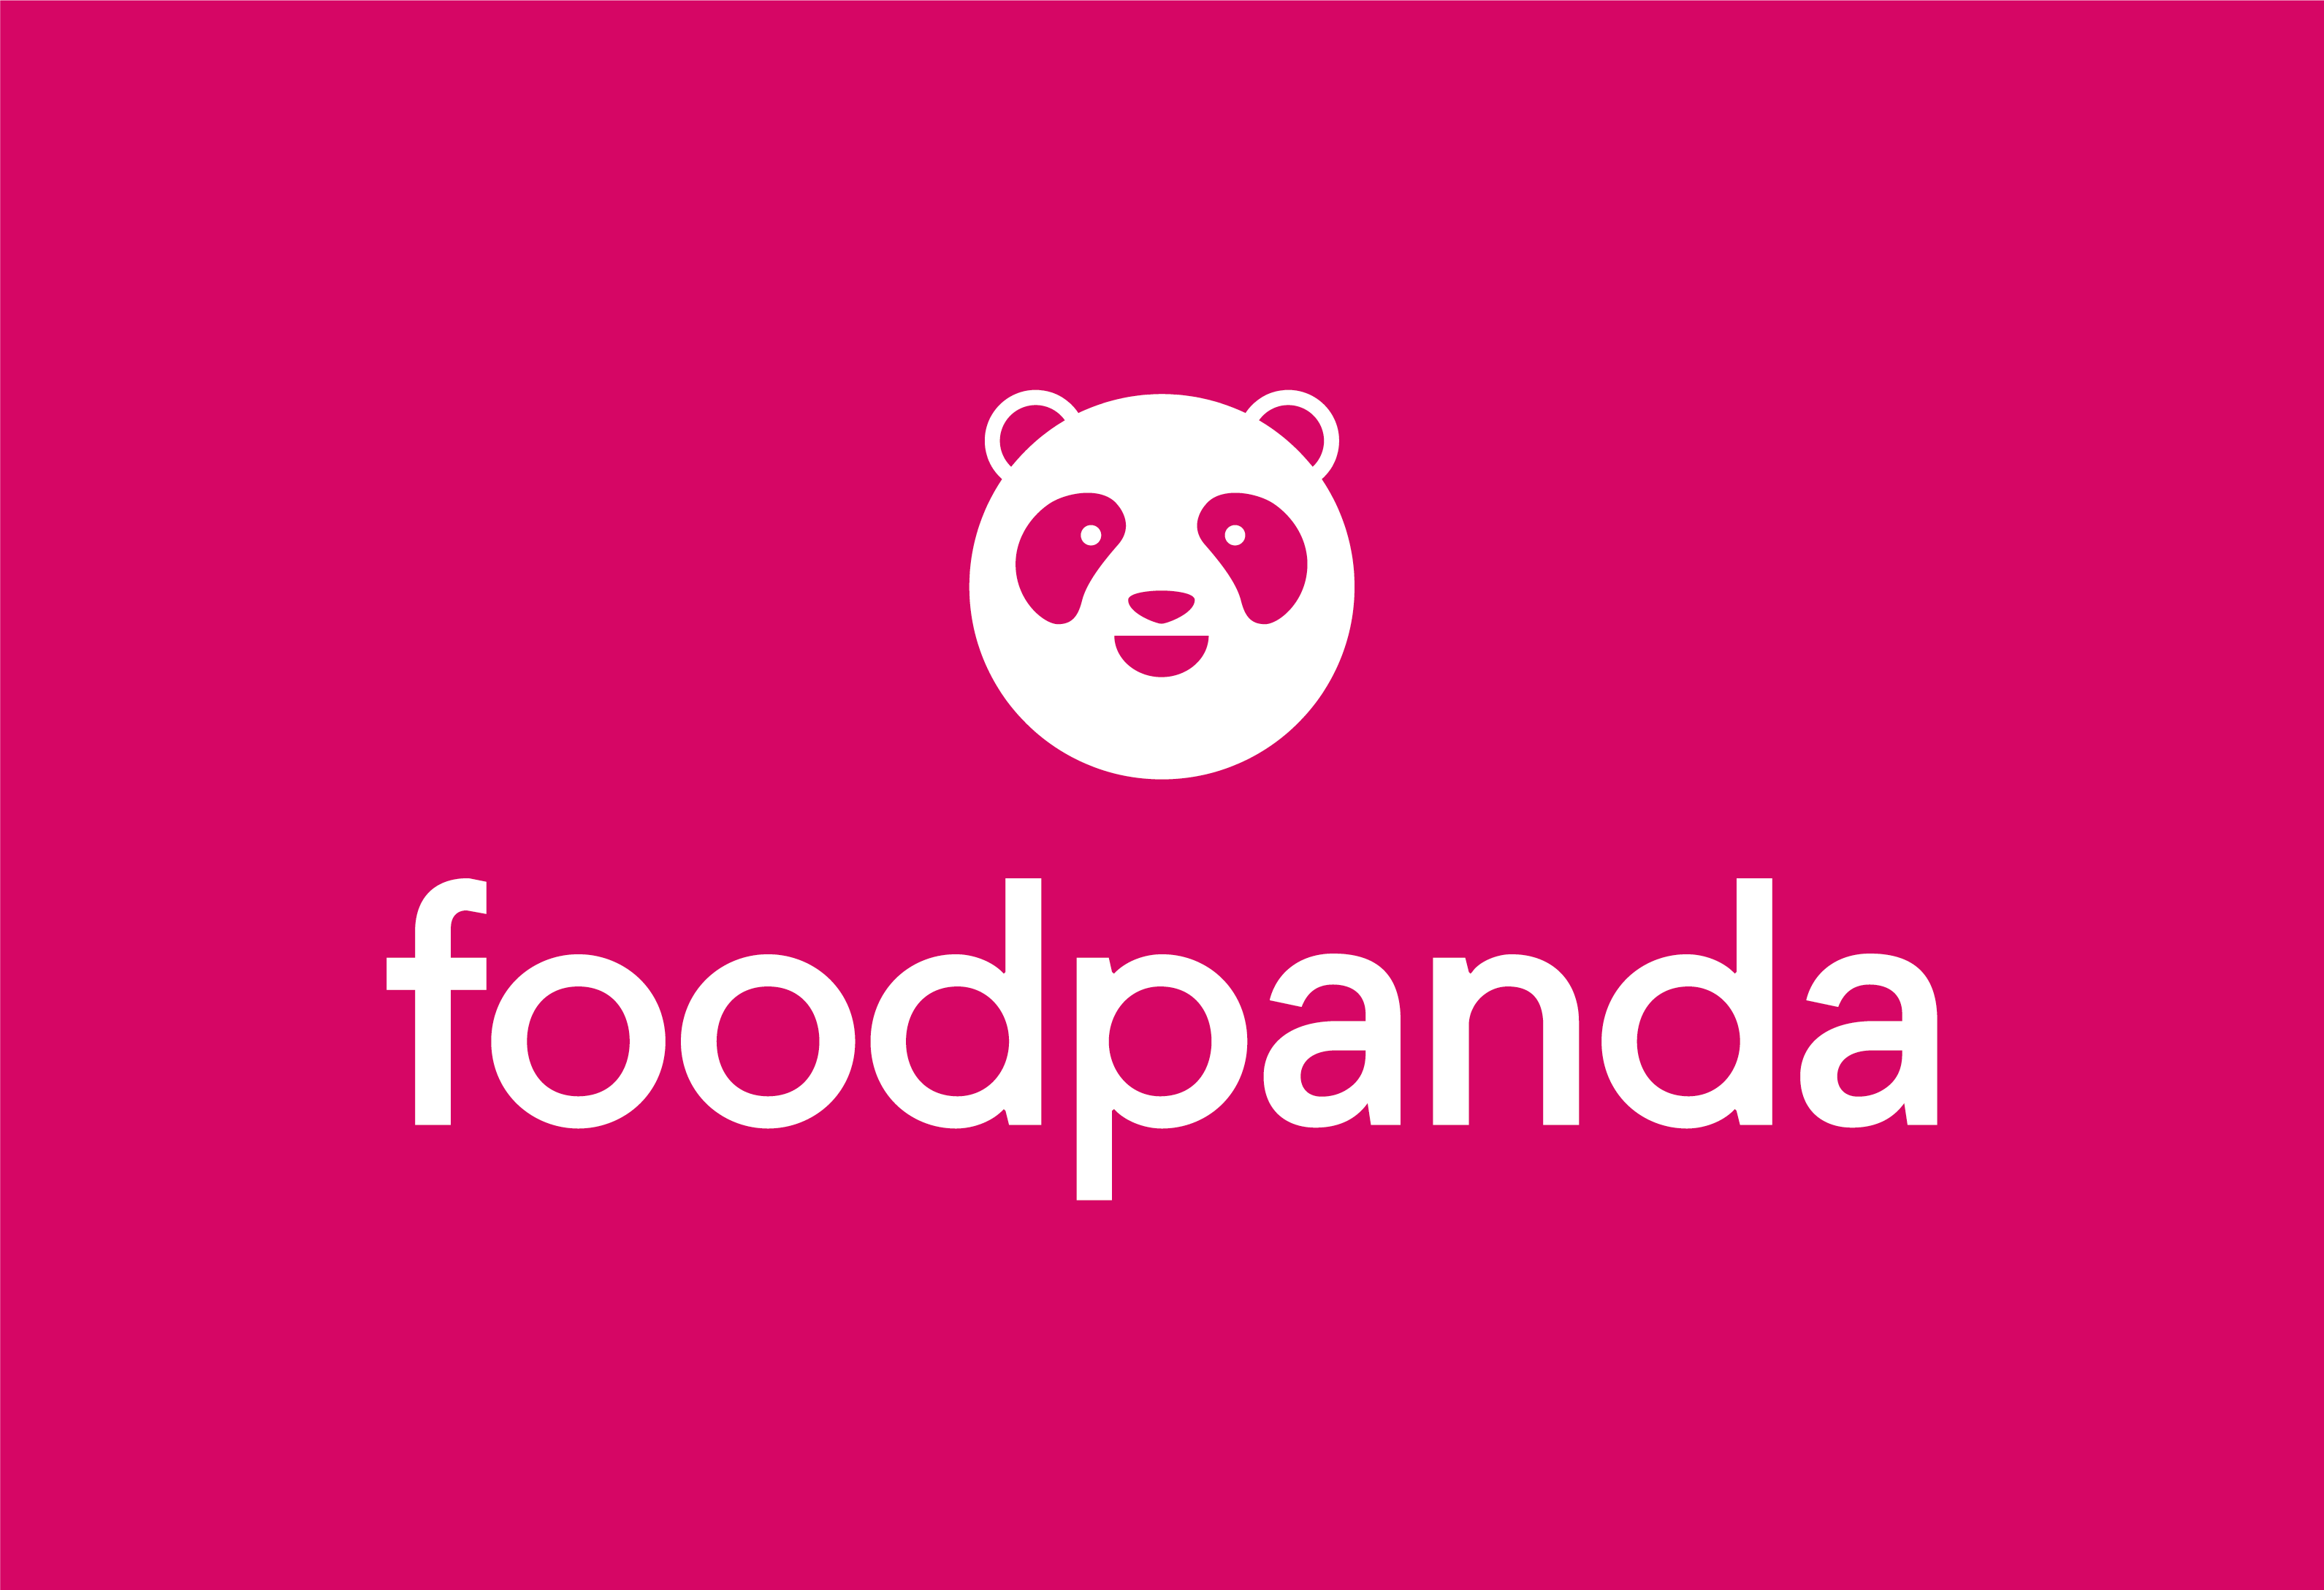 Food Panda Philippines Inc.